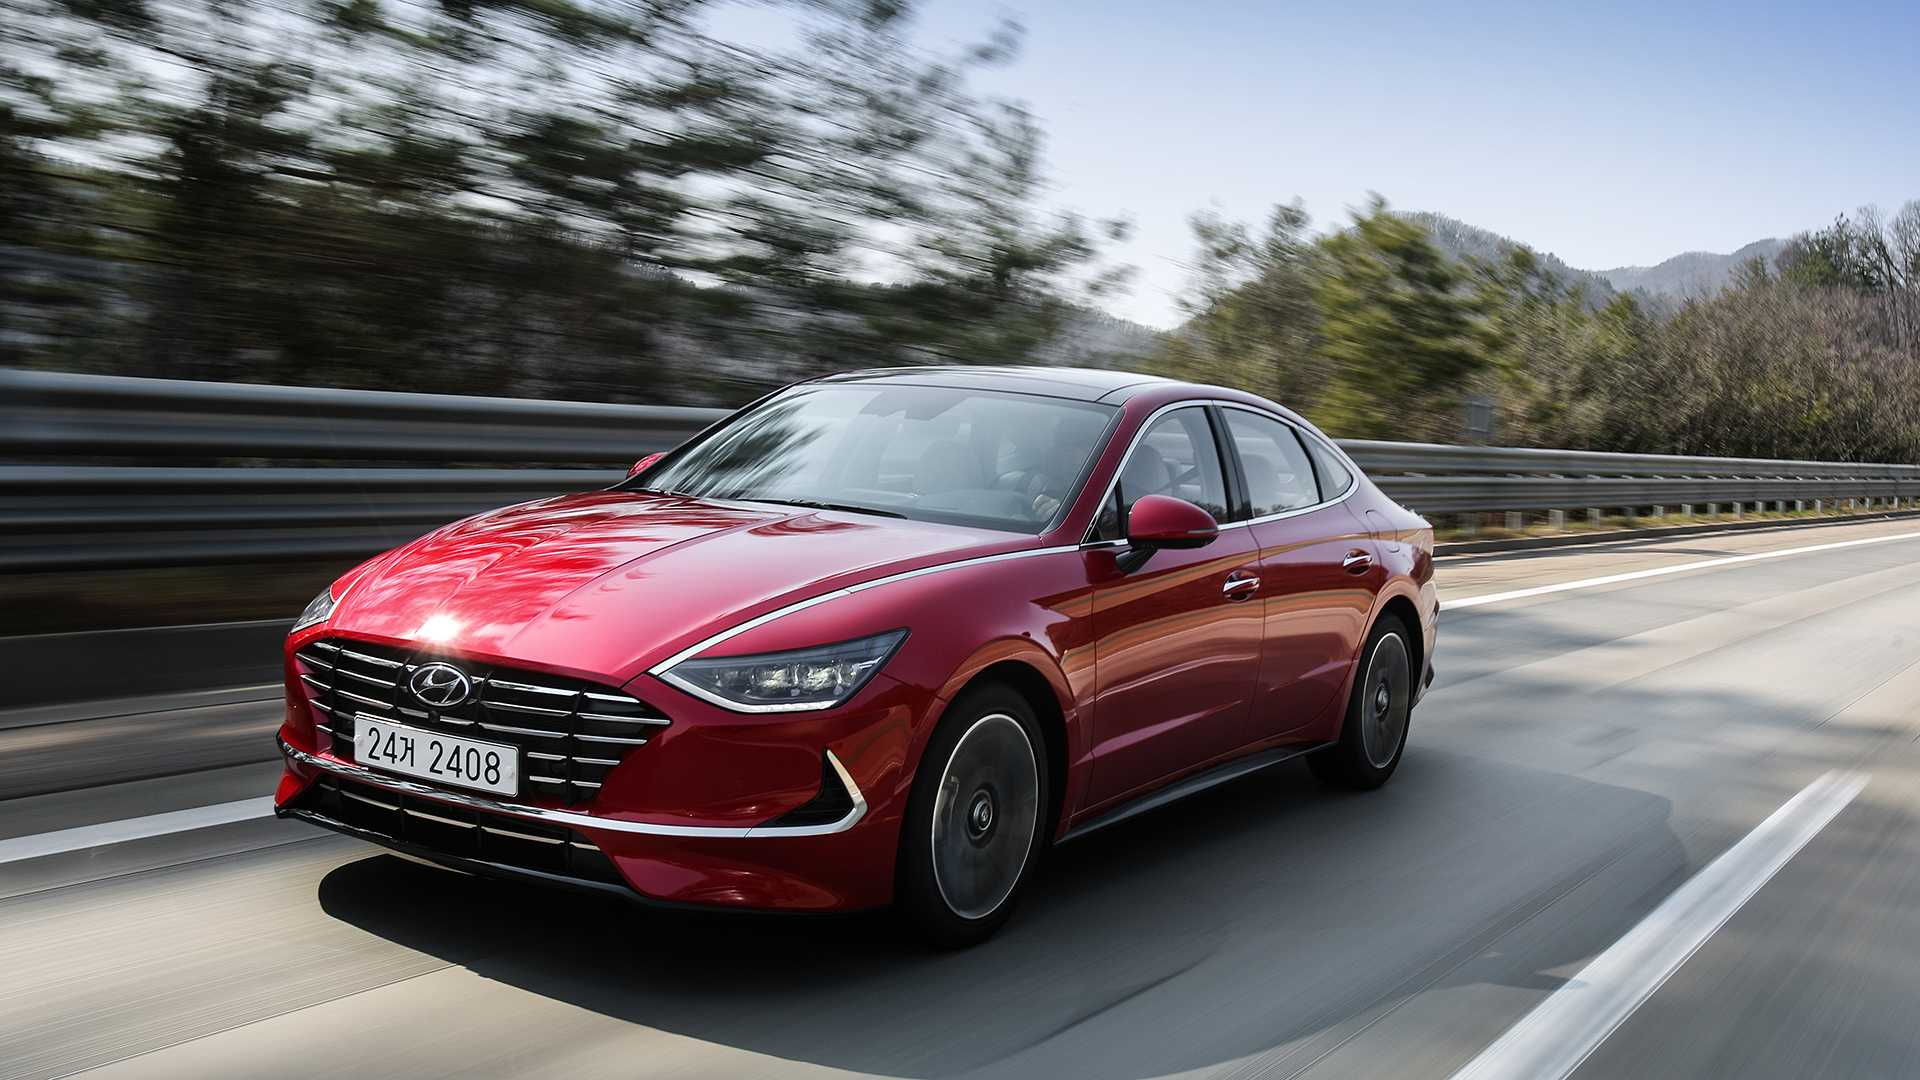 18 Best 2020 Hyundai Sonata Review Price And Release Date